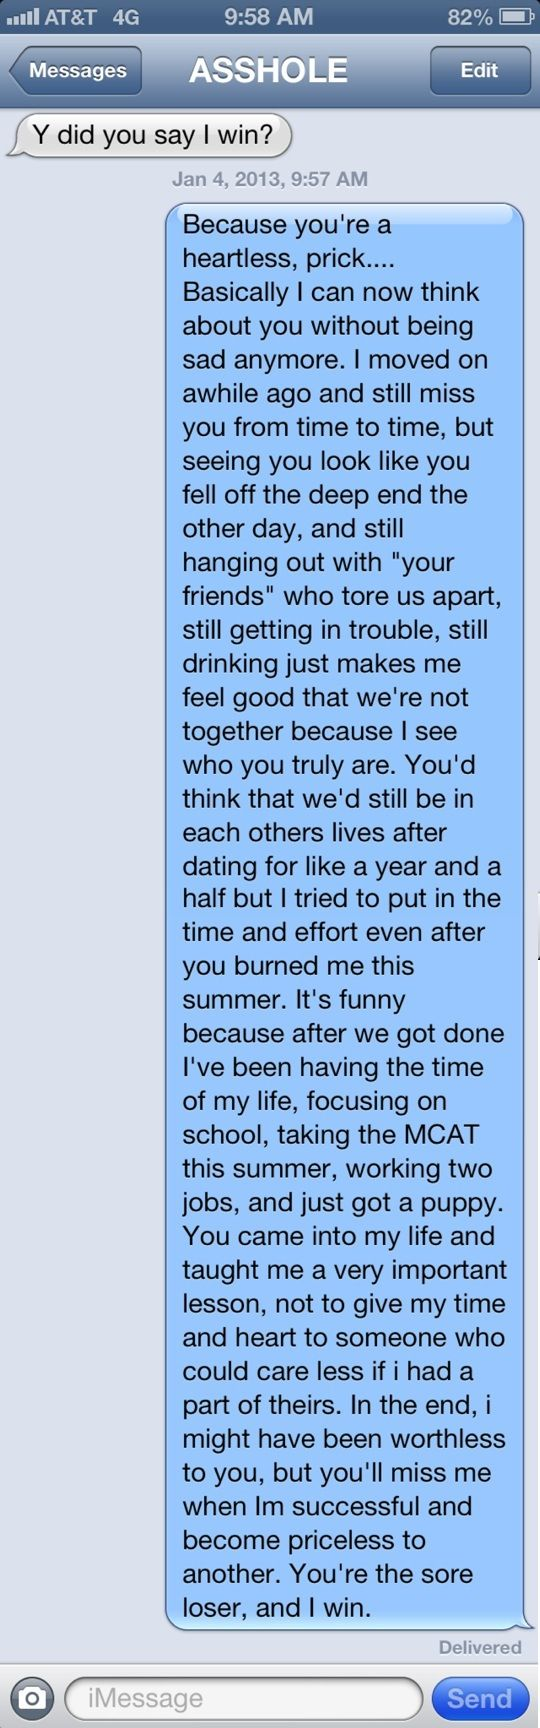 """LADIES! Never let a """"Man"""" make you feel inferior and worthless. Text Message I Sent to my Ex who Cheated on Me from Wisconsin today. Good Riddance Asshole. Spoken from the Heart!"""